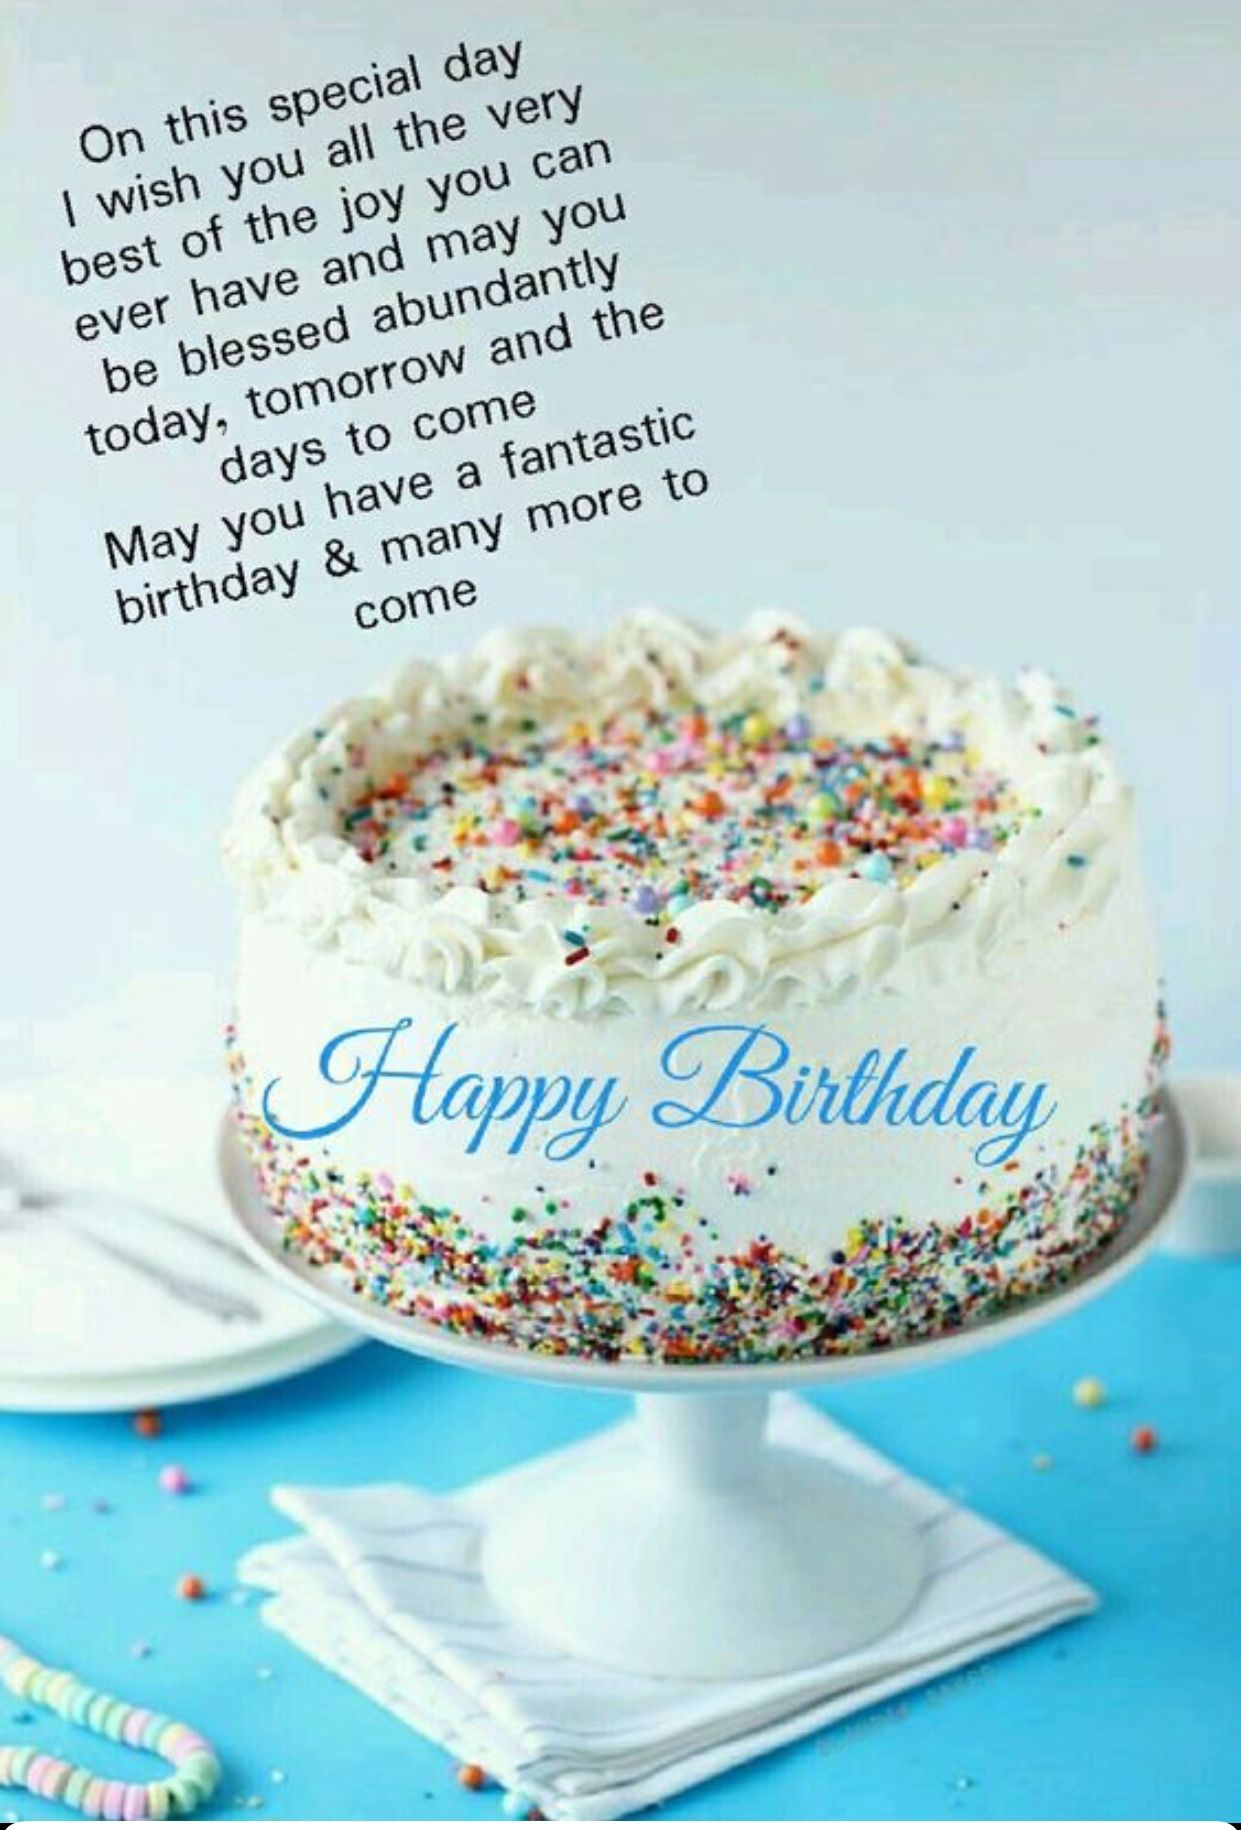 Pin by shaheen perwaz on Happy Birthday Images in 2020